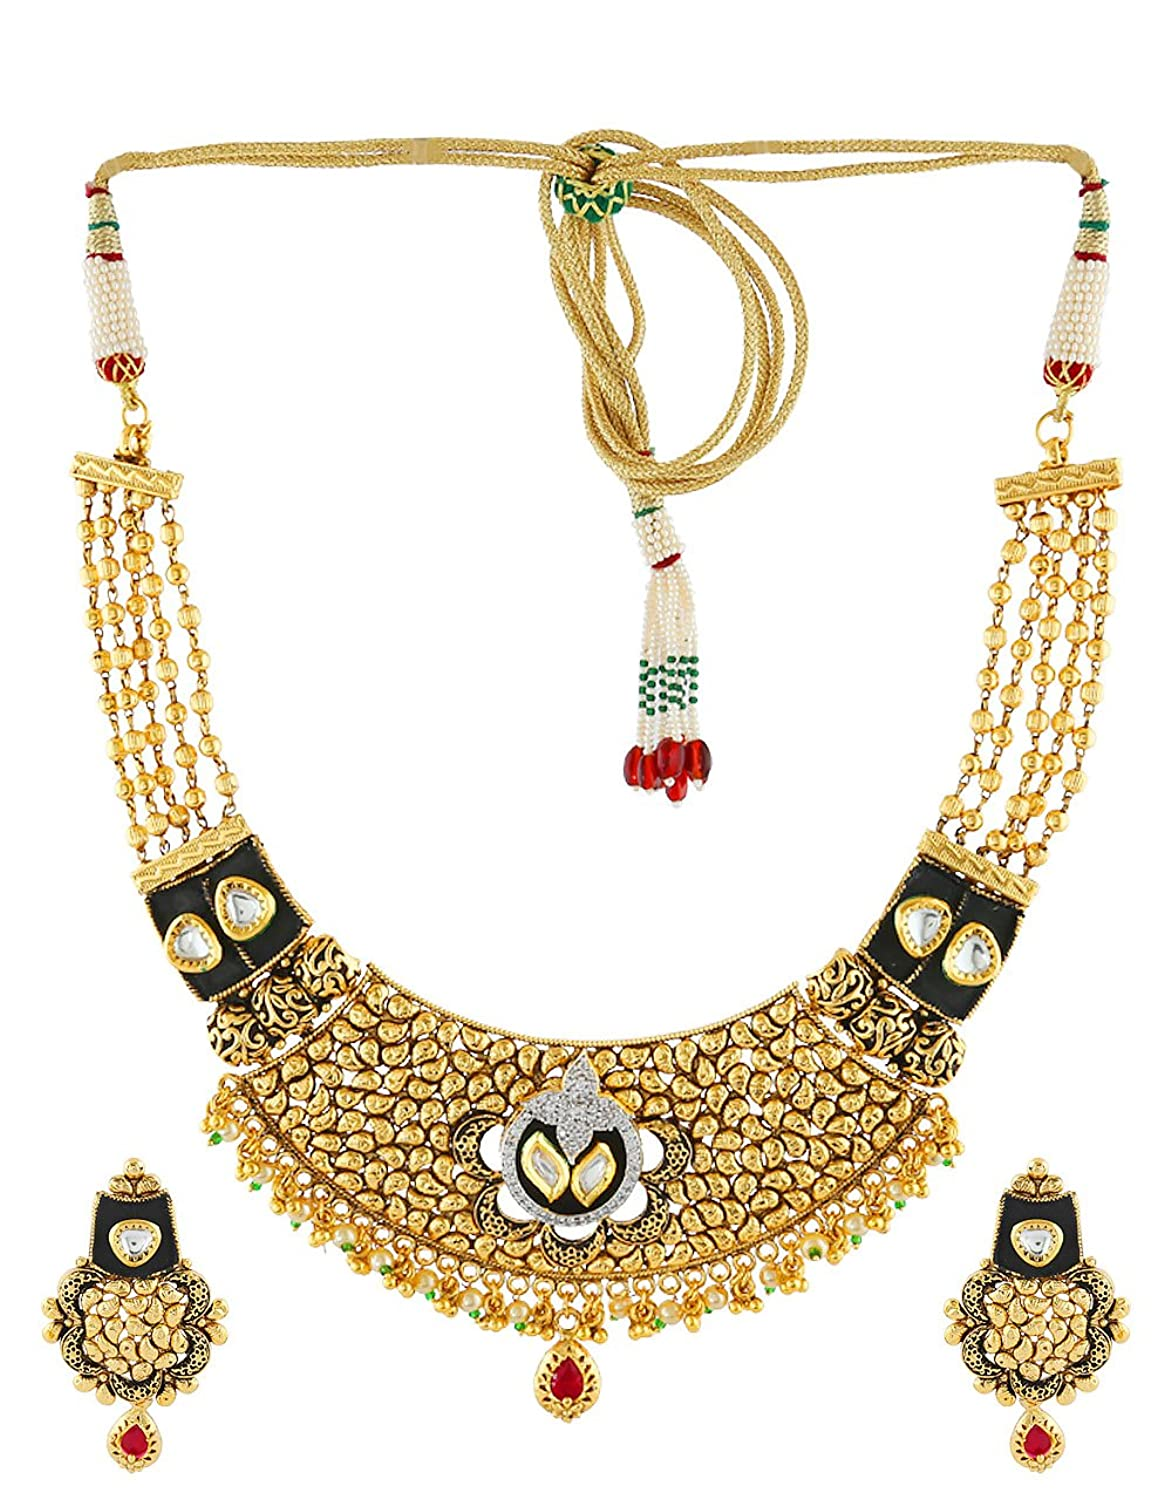 Anuradha Art Golden Finish Styled With American Diamond Stone Wonderful Traditional Necklace Set For Women/Girls